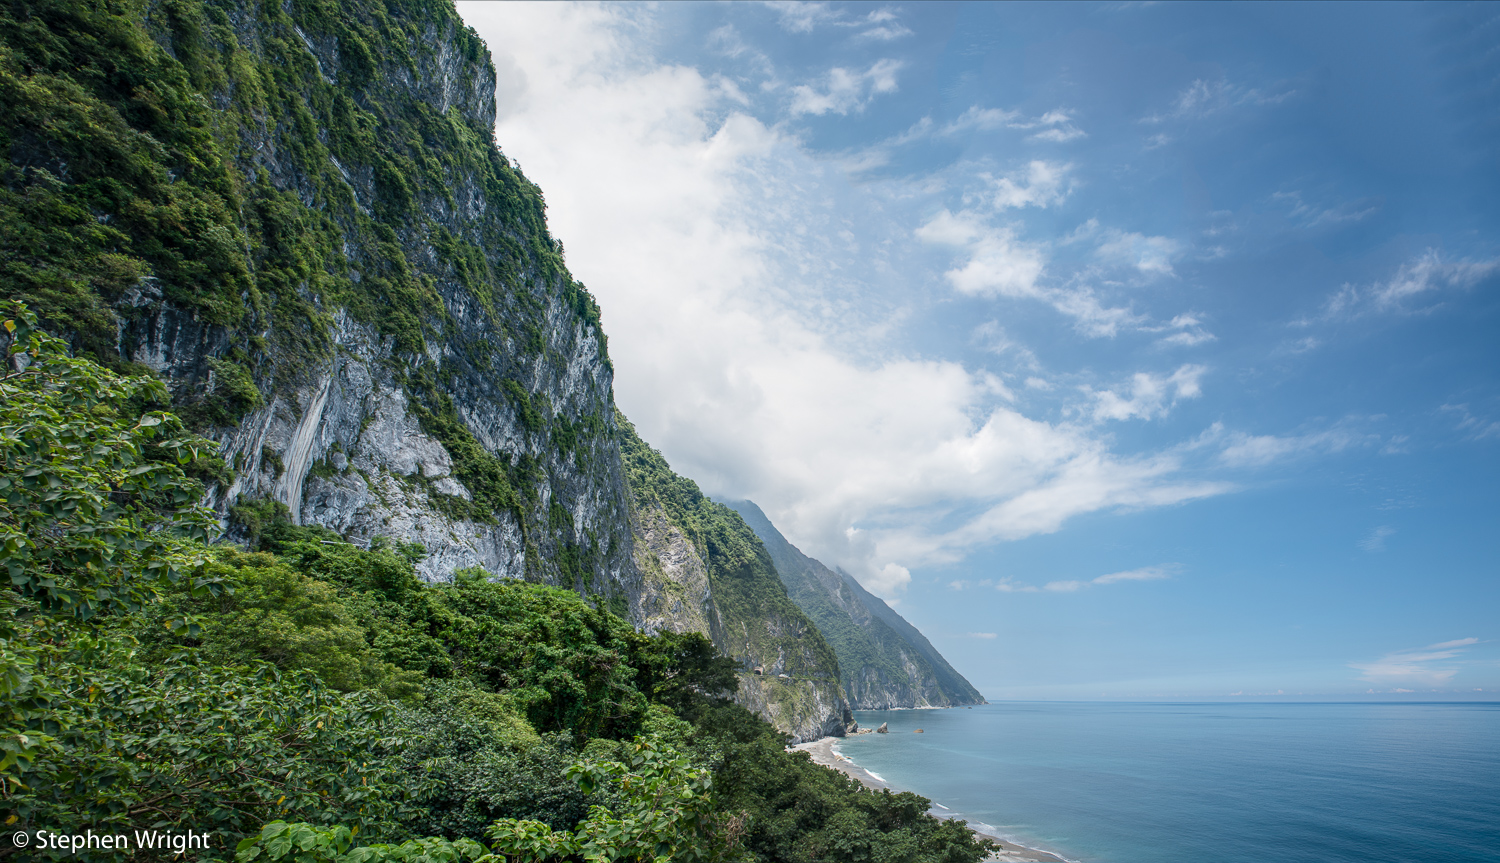 Qingshui Cliffs on Taiwan's east cost.